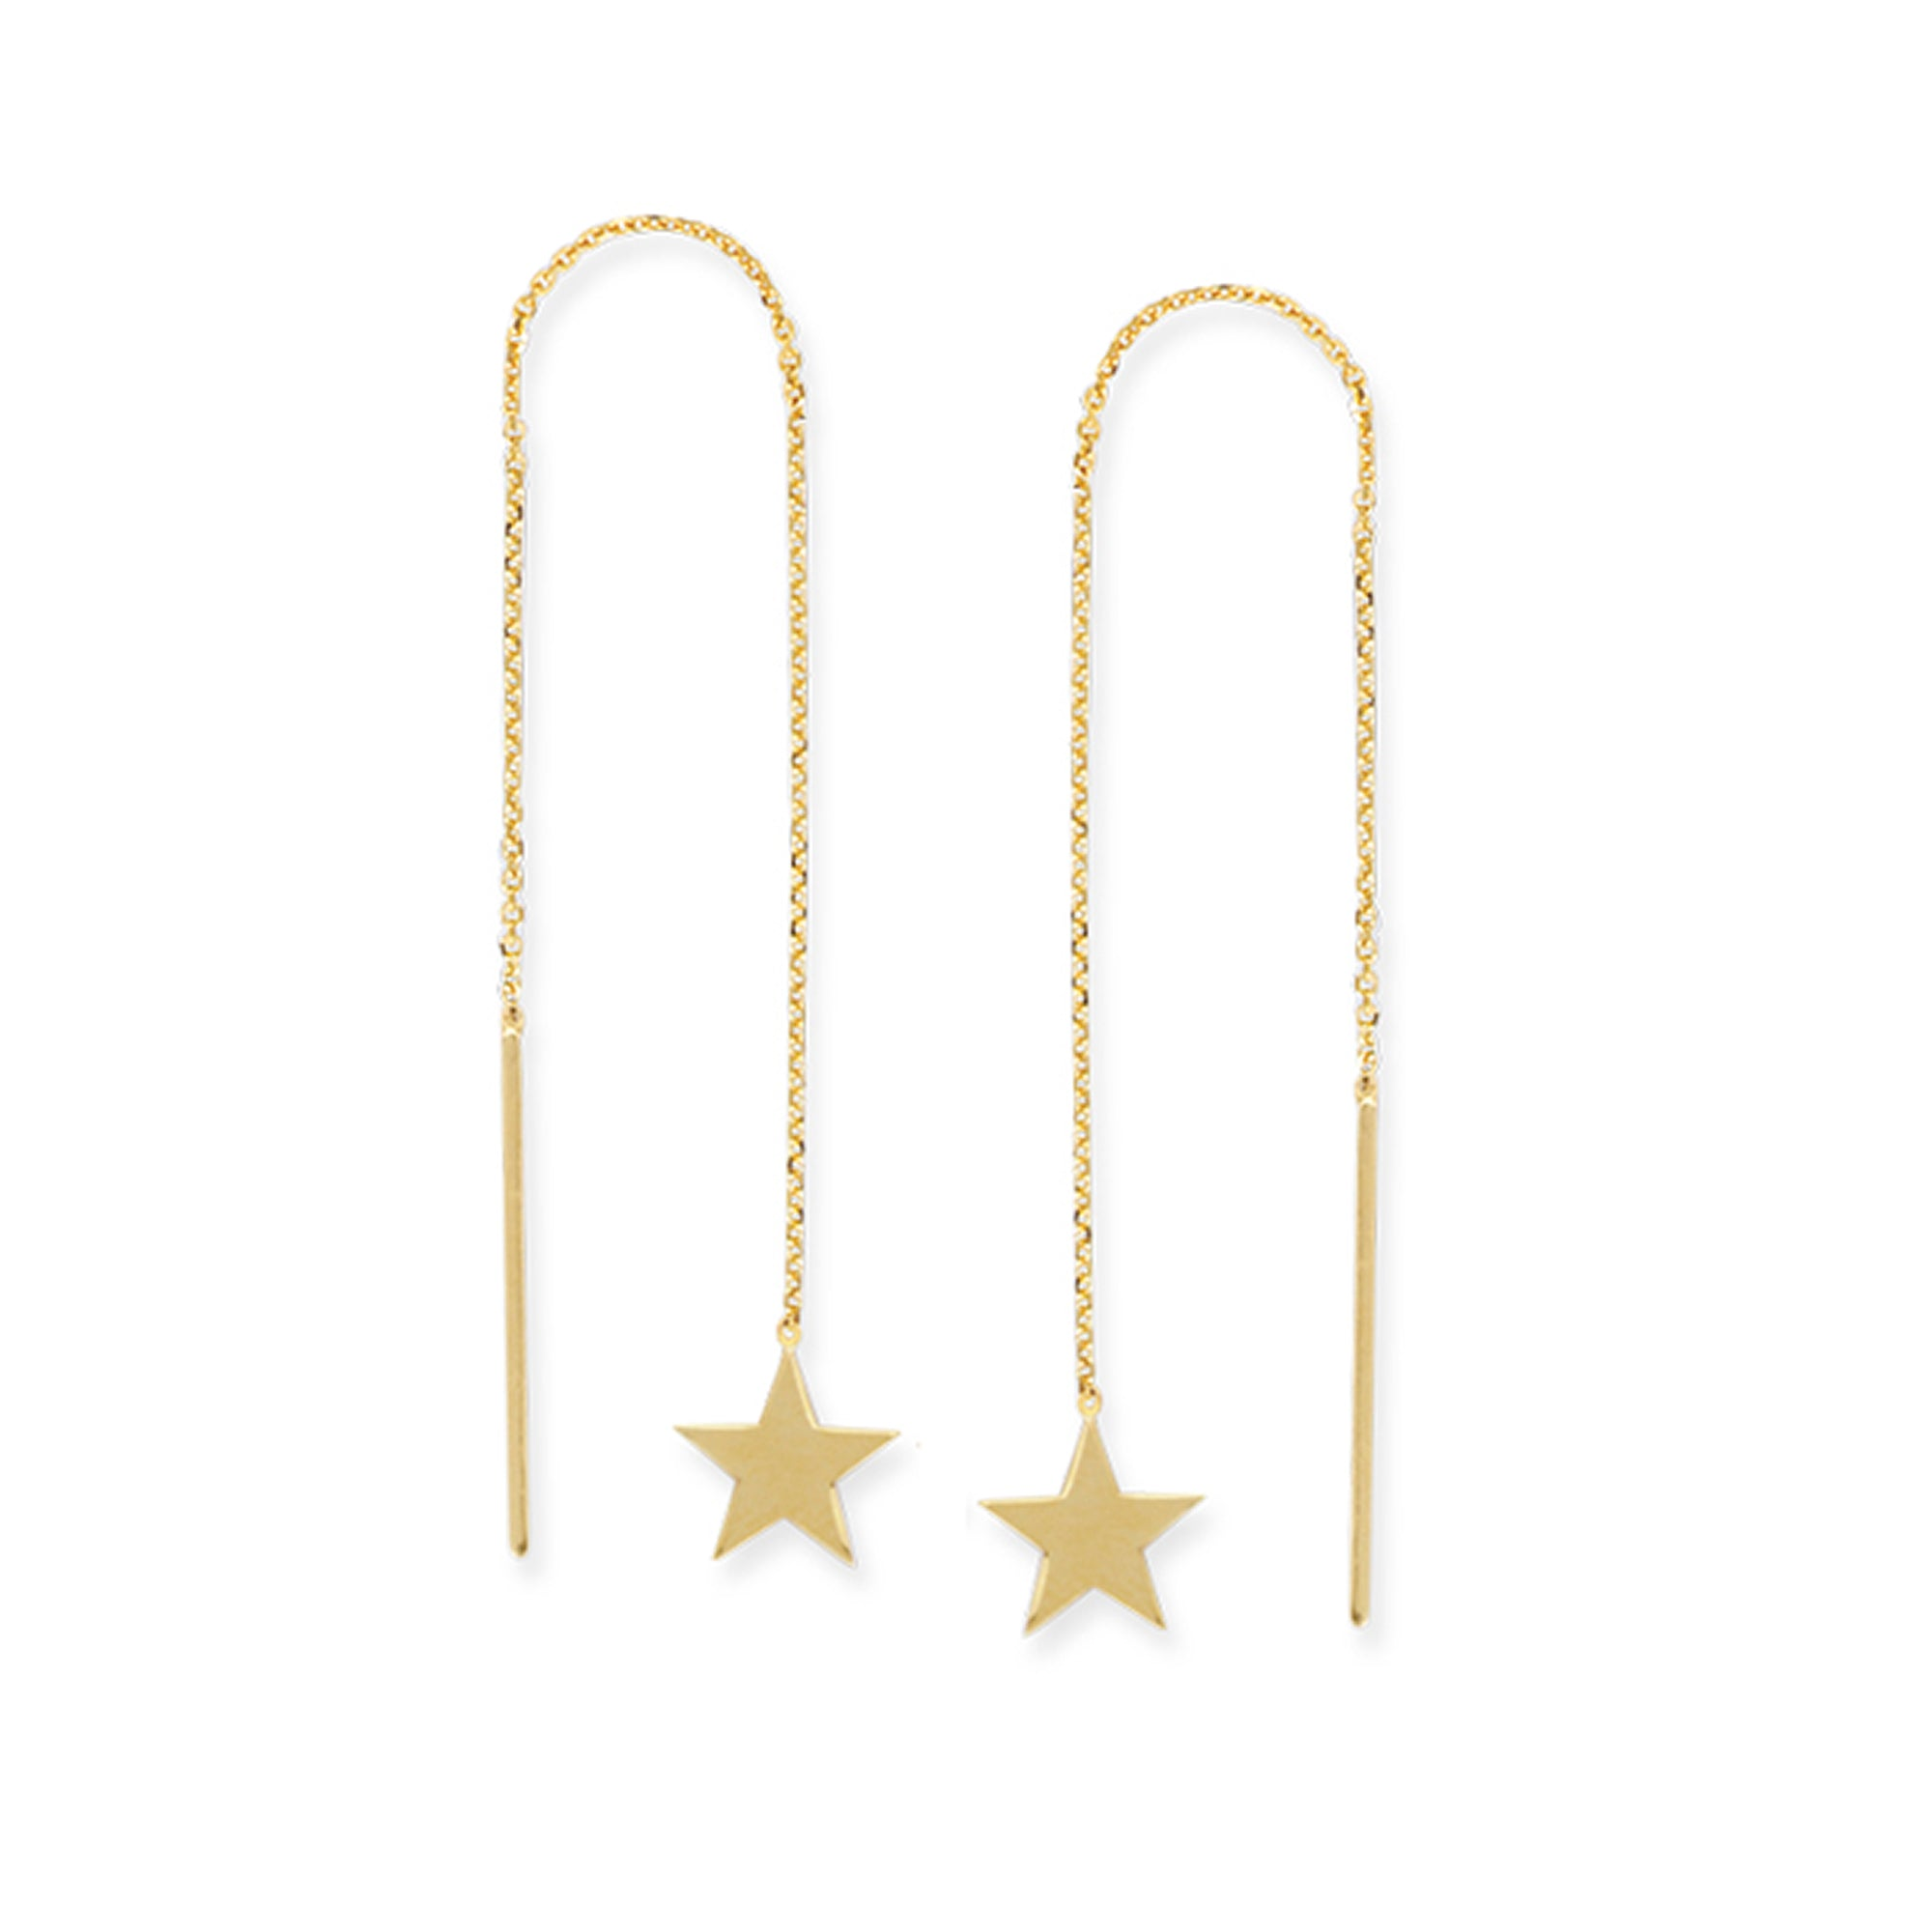 14K Gold Flat Star Threader Earrings with Cable Chain